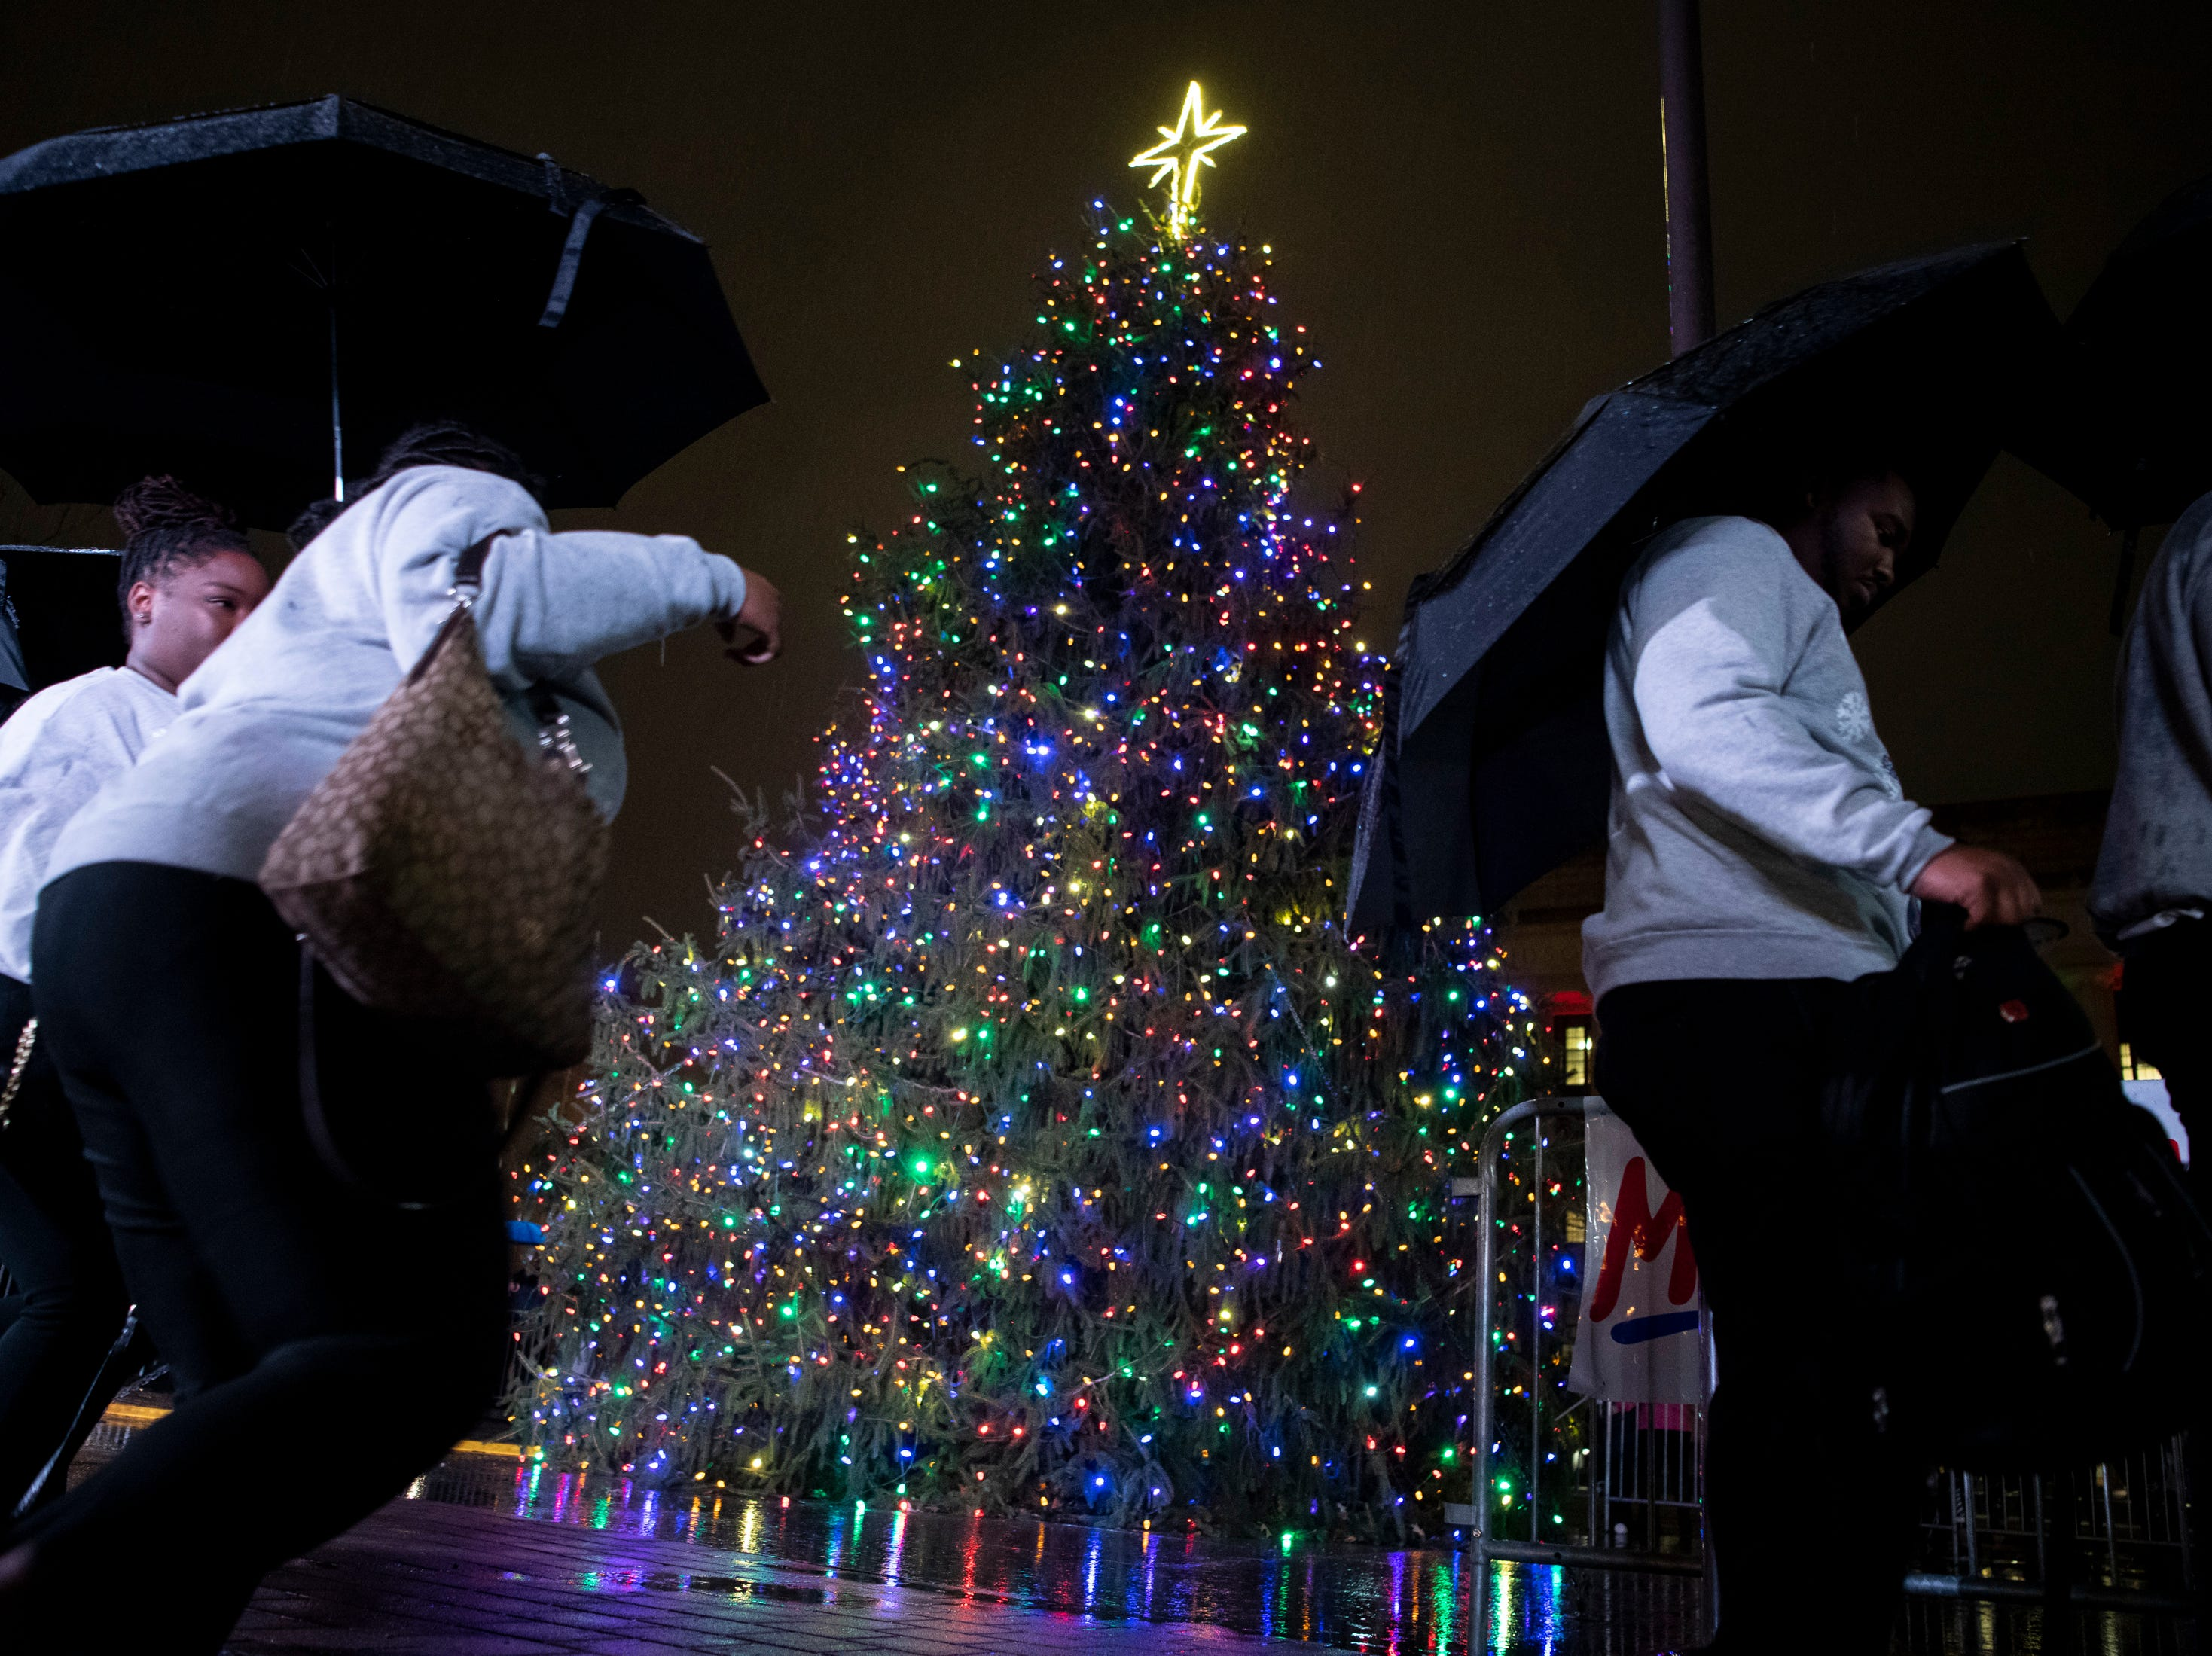 The Fisk Jubilee Singers walk past the tree while exiting the stage after performing during the Metro Nashville Christmas Tree Lighting event at Public Square Park in Nashville, Tenn., Friday, Nov. 30, 2018.